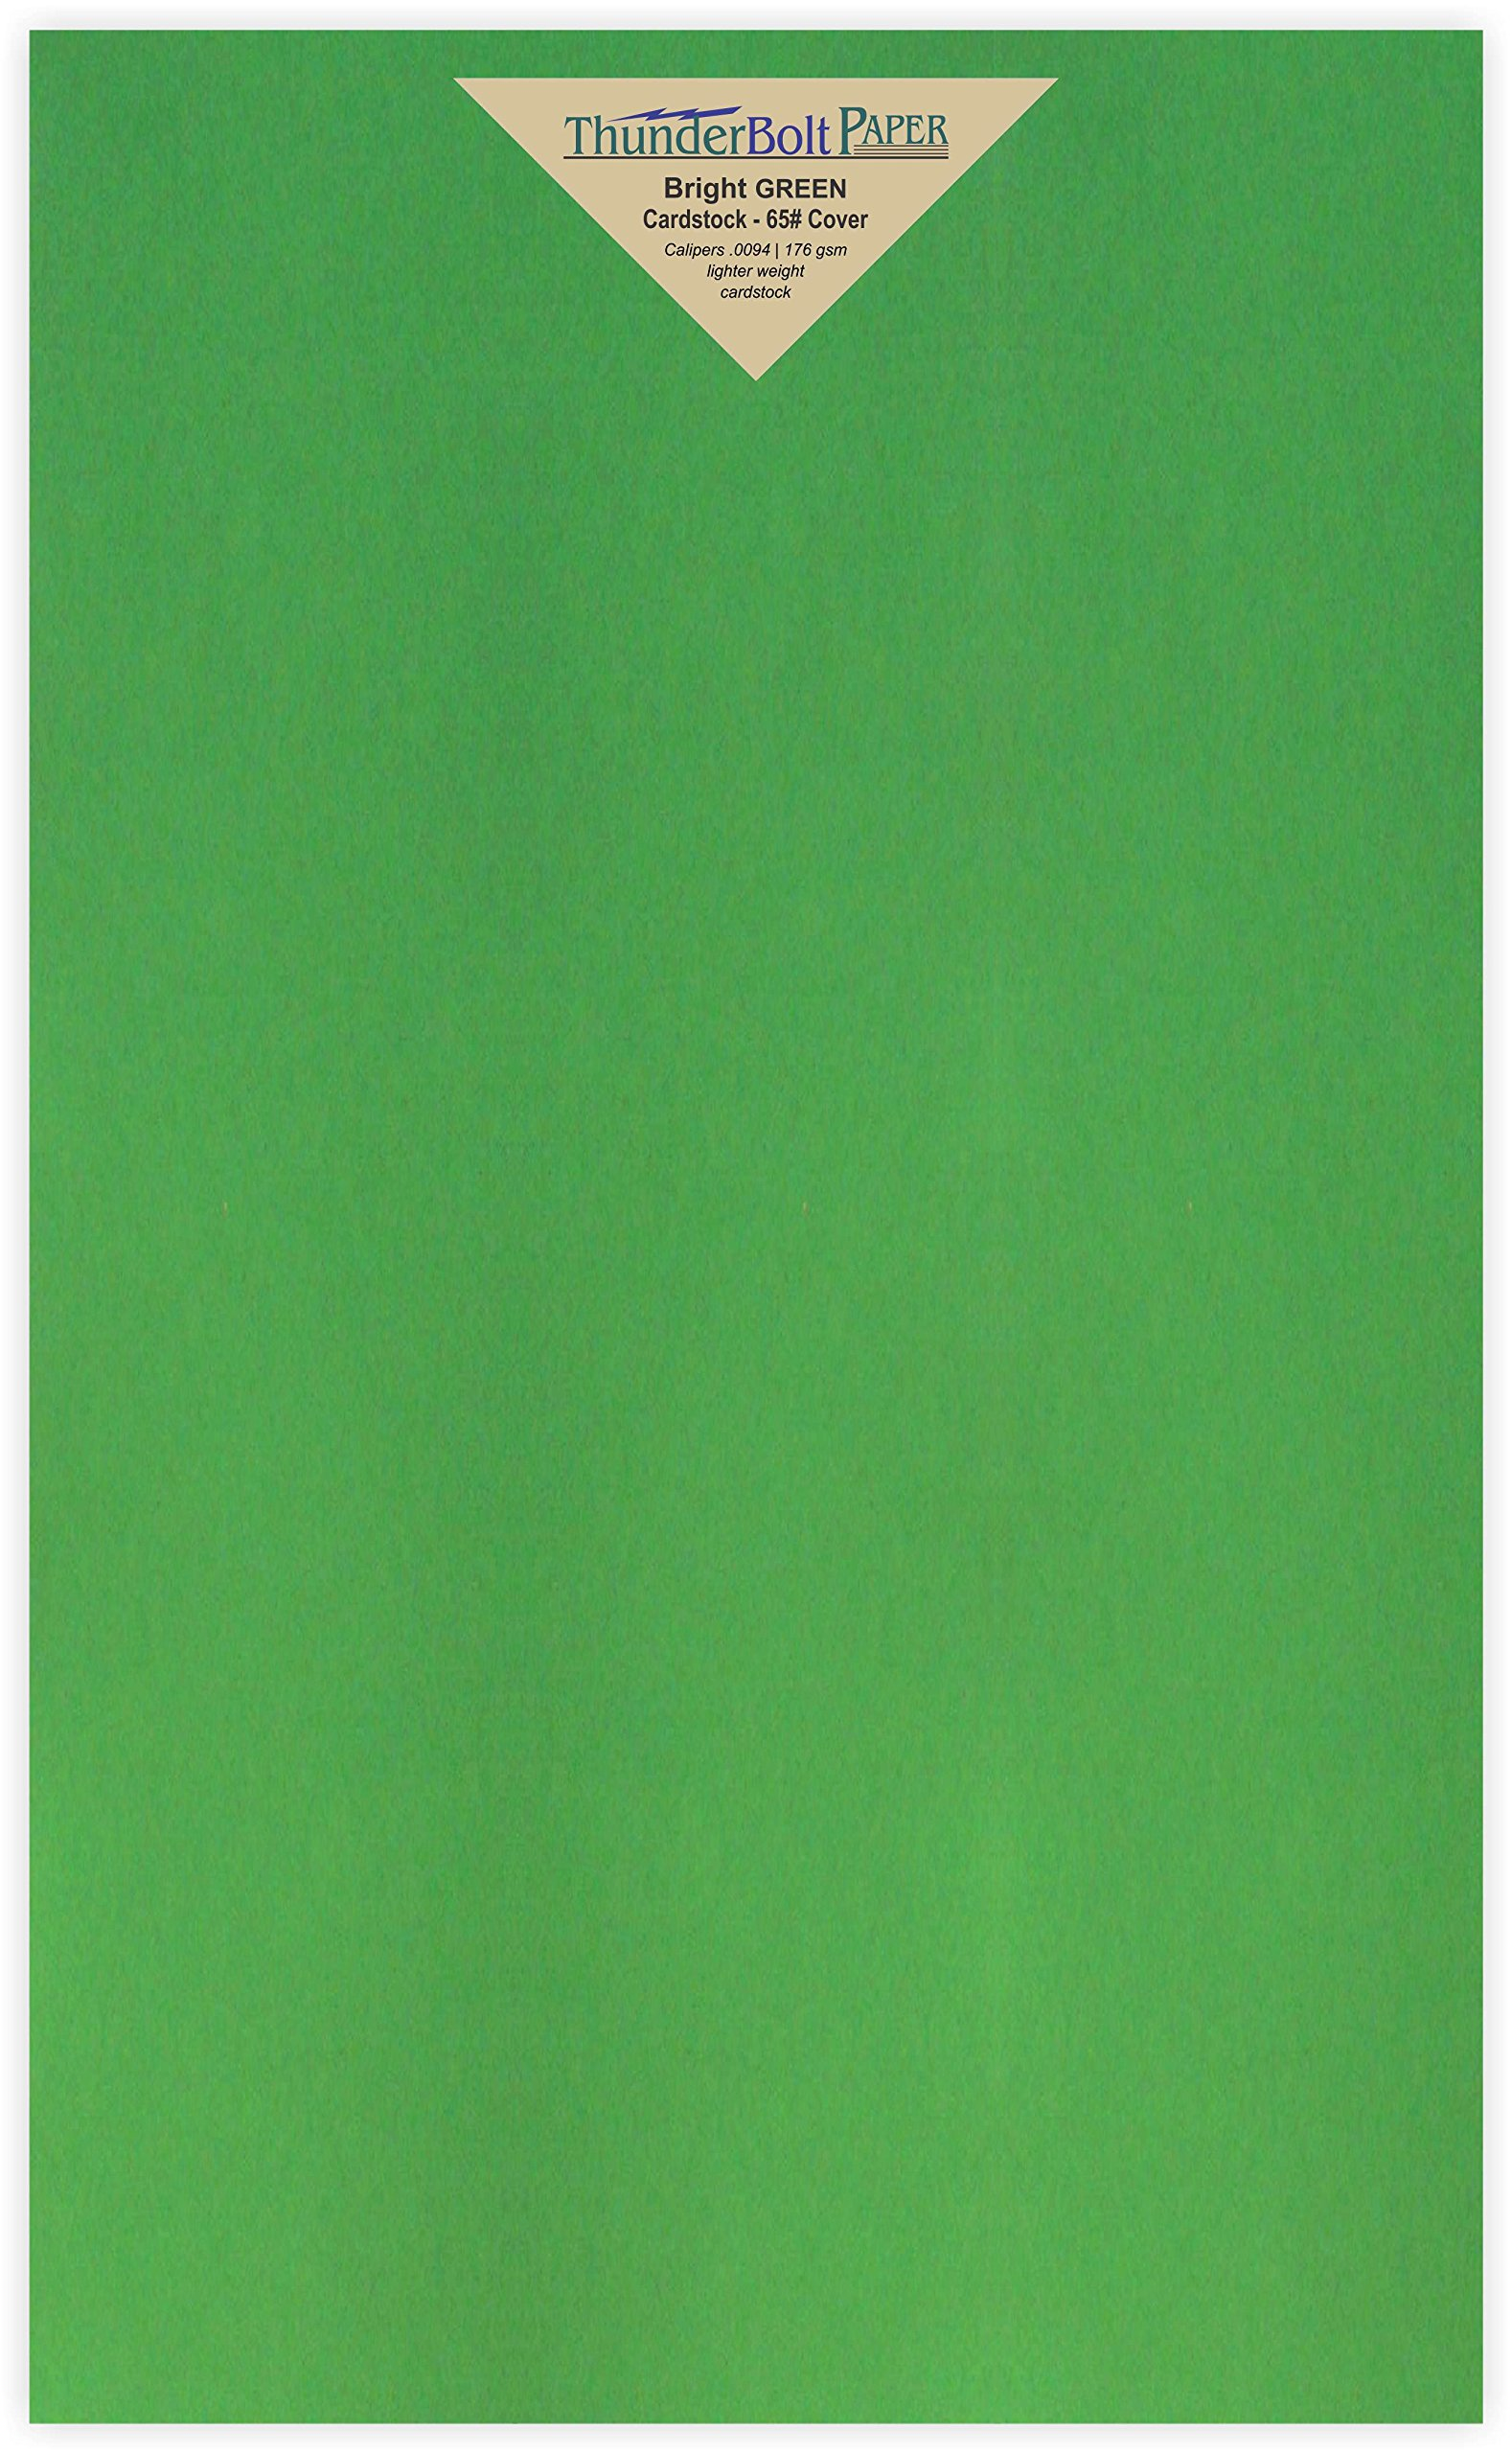 50 Bright Green 65lb Cover Card Paper - 8.5'' X 14'' (8.5X14 Inches) Legal Menu Size - 65 lb/pound Light Weight Cardstock - Quality Printable Smooth Surface for Bright Colorful Results